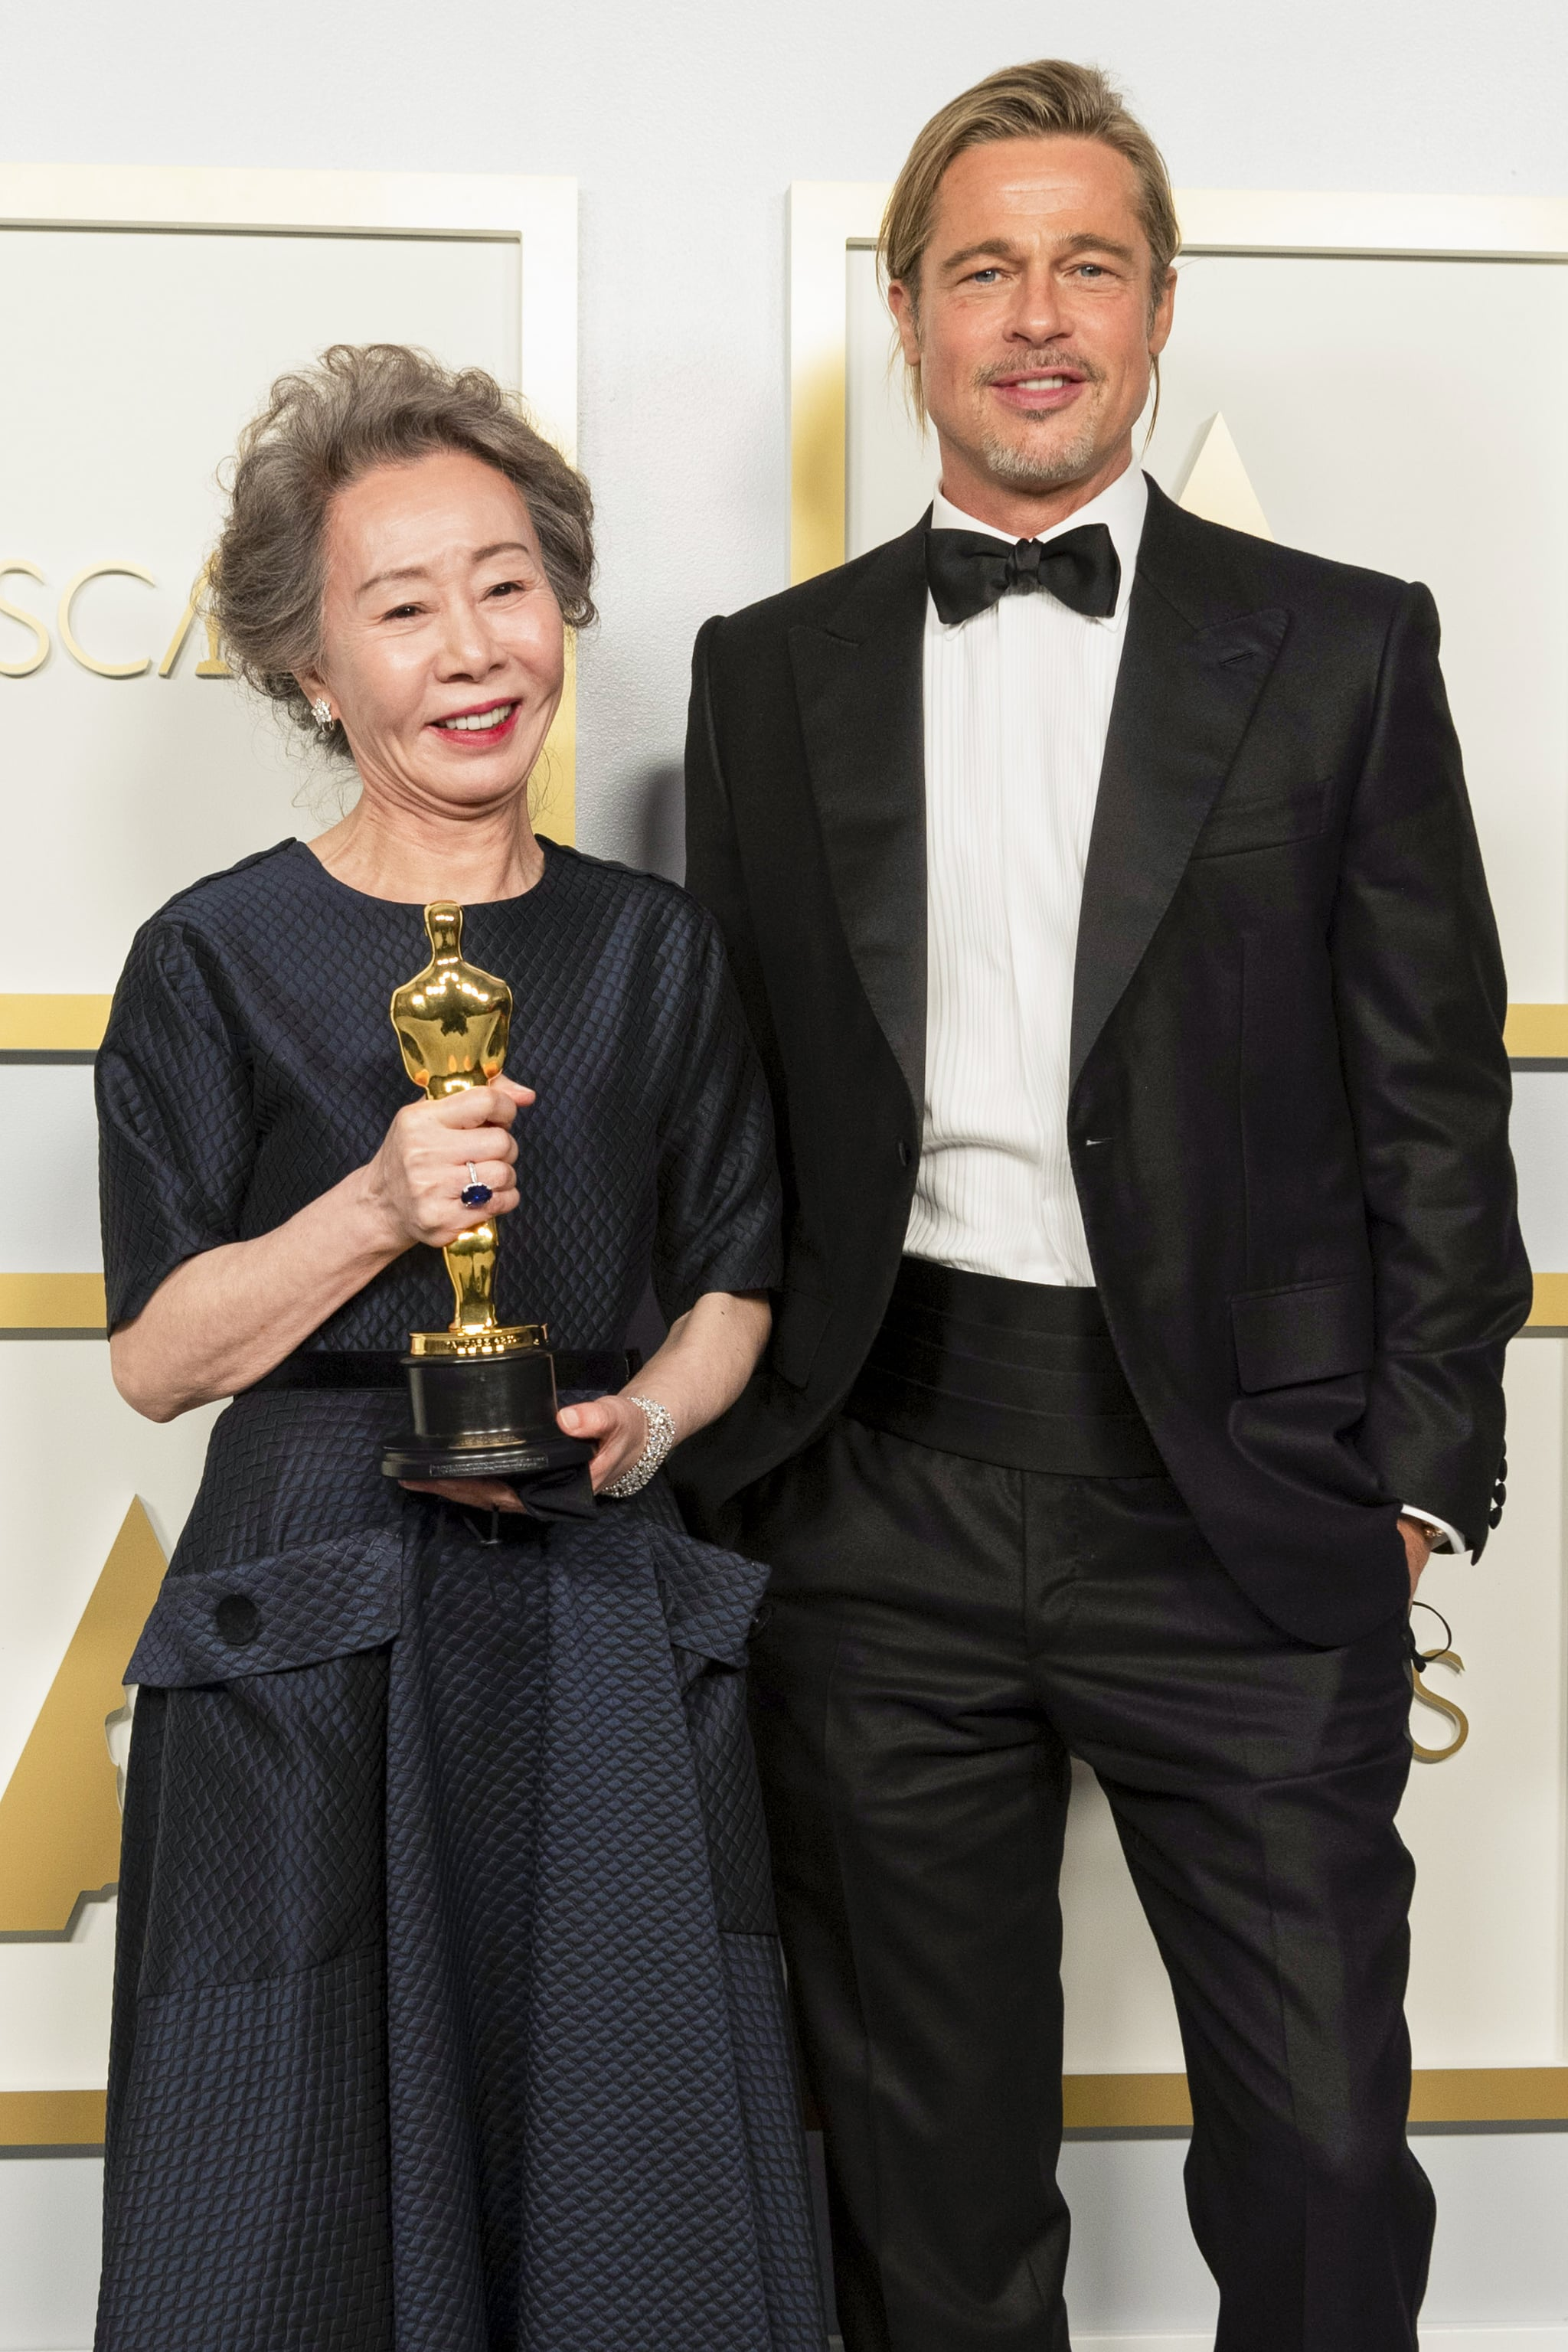 LOS ANGELES, CALIFORNIA – APRIL 25: (EDITORIAL USE ONLY) In this handout photo provided by A.M.P.A.S., Yuh-Jung Youn poses backstage with the Oscar for Actress in a Supporting Role with Brad Pitt during the 93rd Annual Academy Awards at Union Station on April 25, 2021 in Los Angeles, California. (Photo by Matt Petit/A.M.P.A.S. via Getty Images)